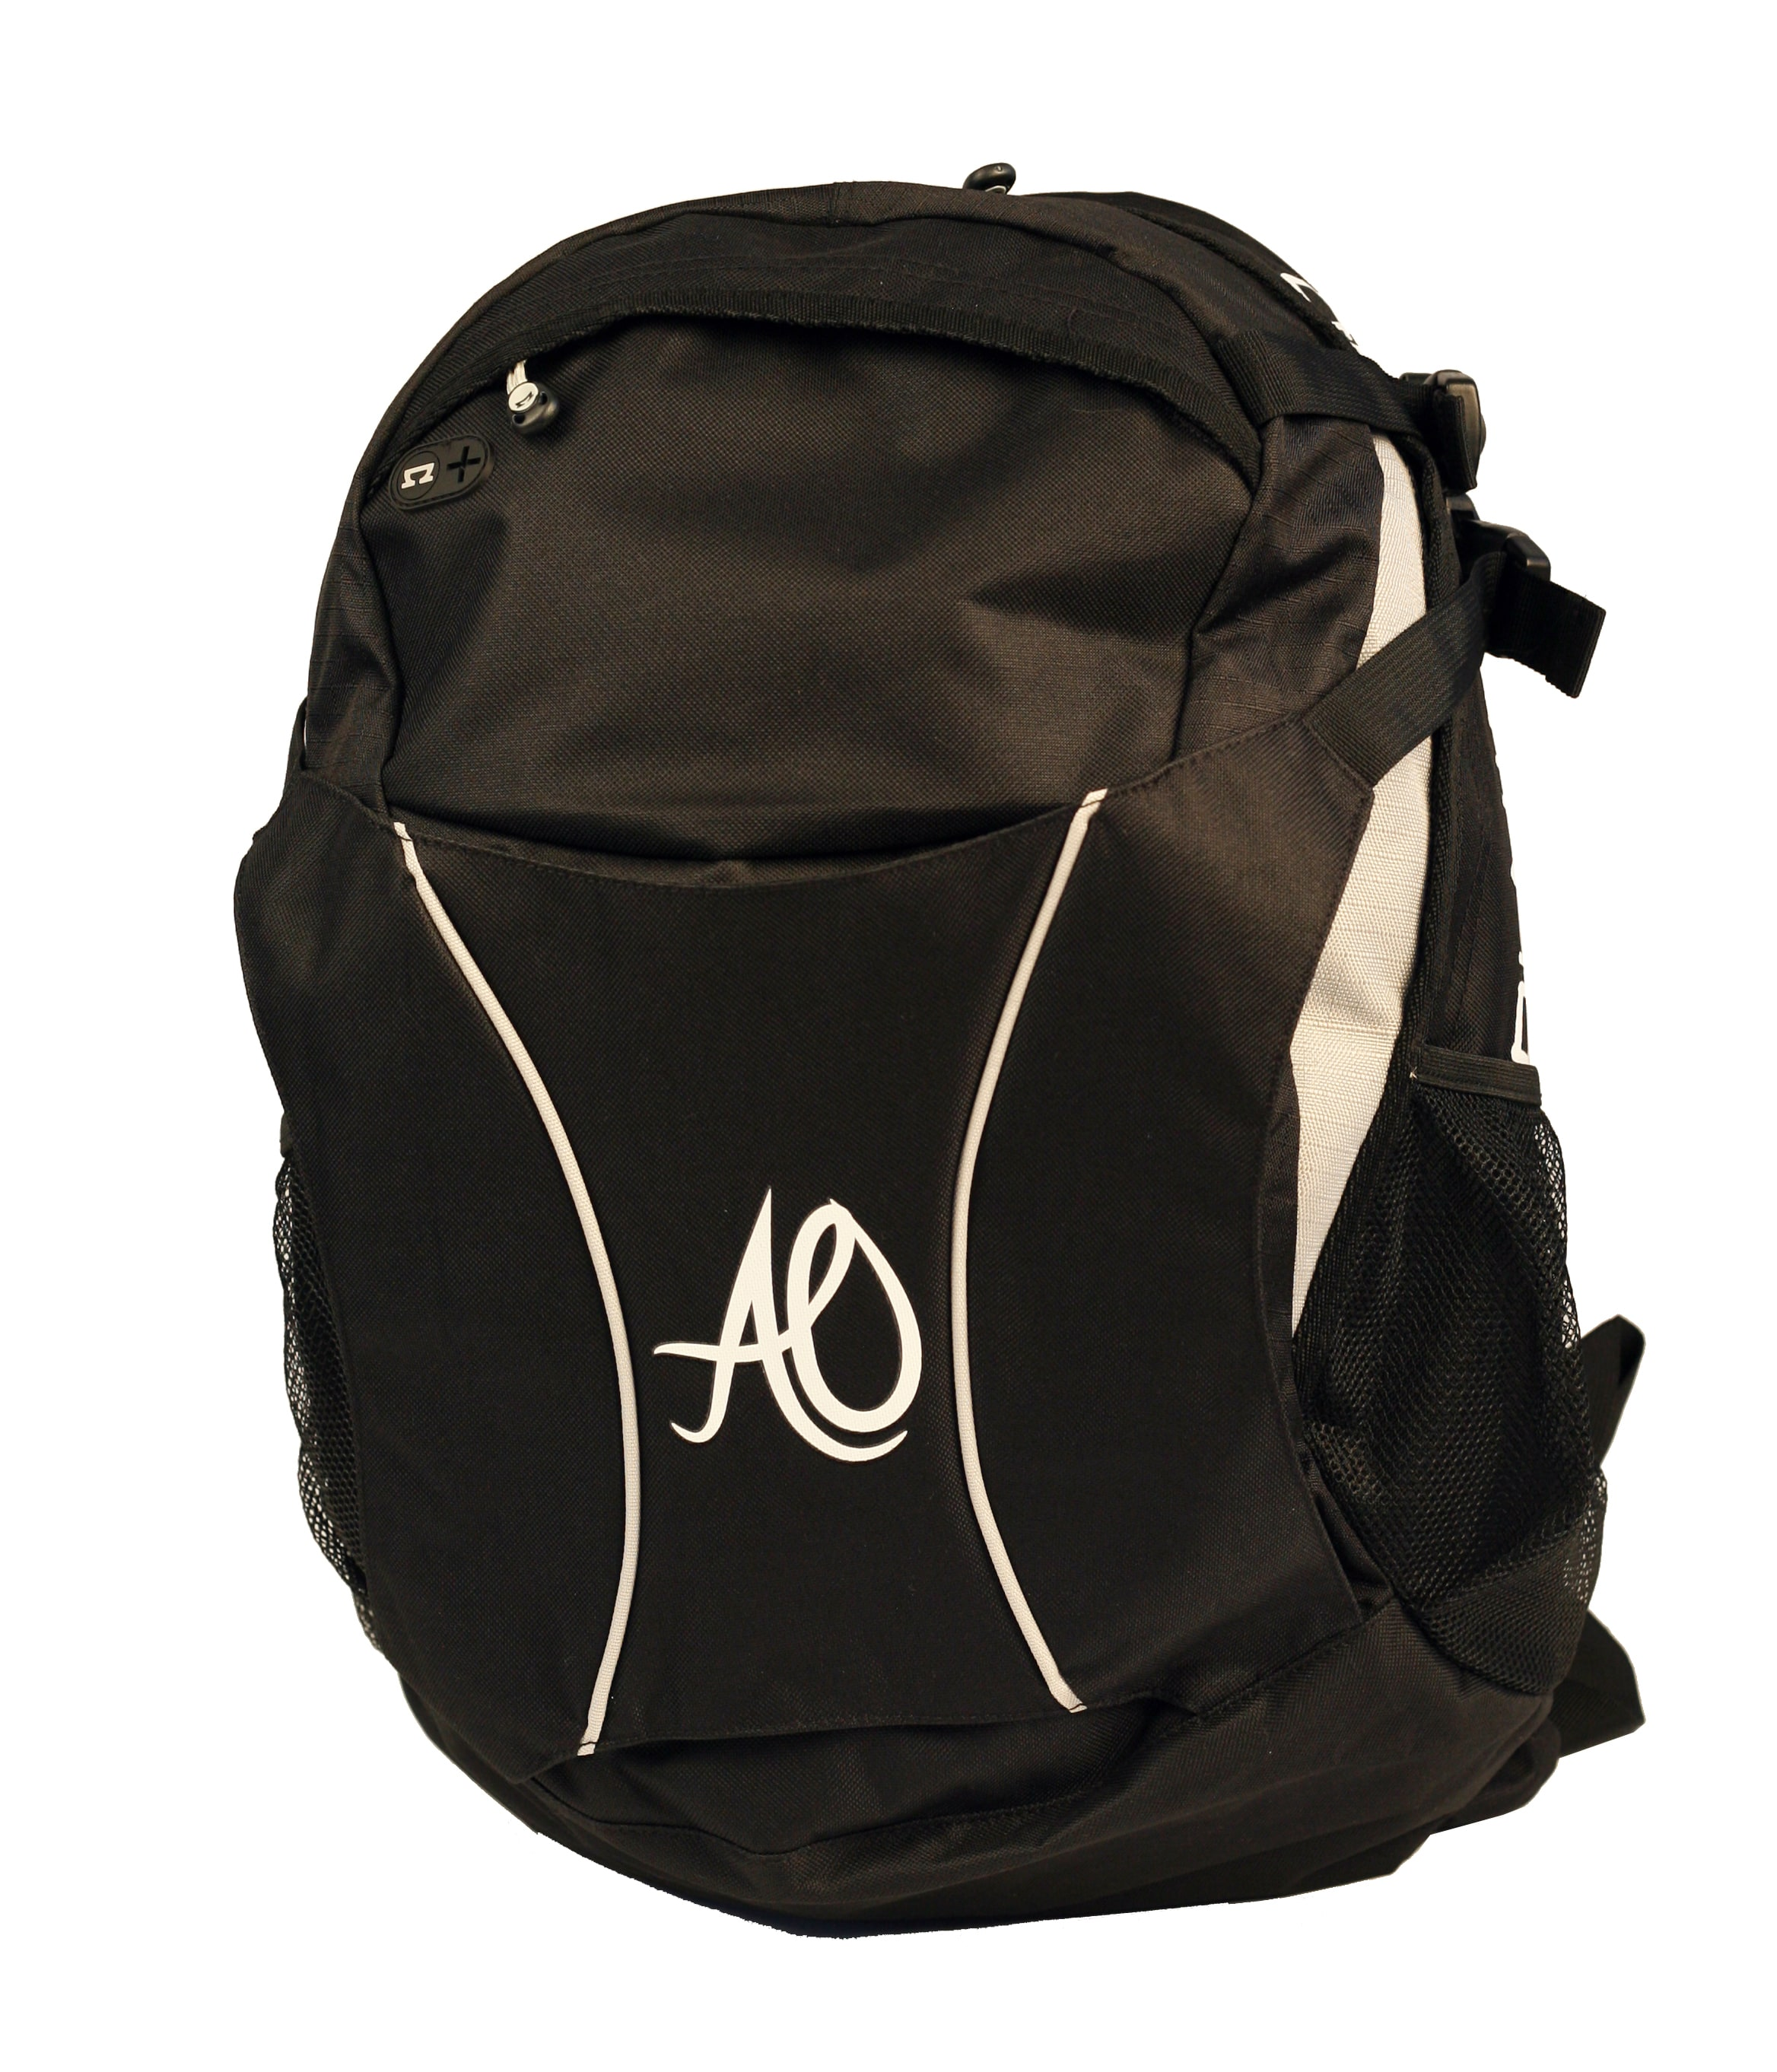 Image of AO Backpack - Black/Grey